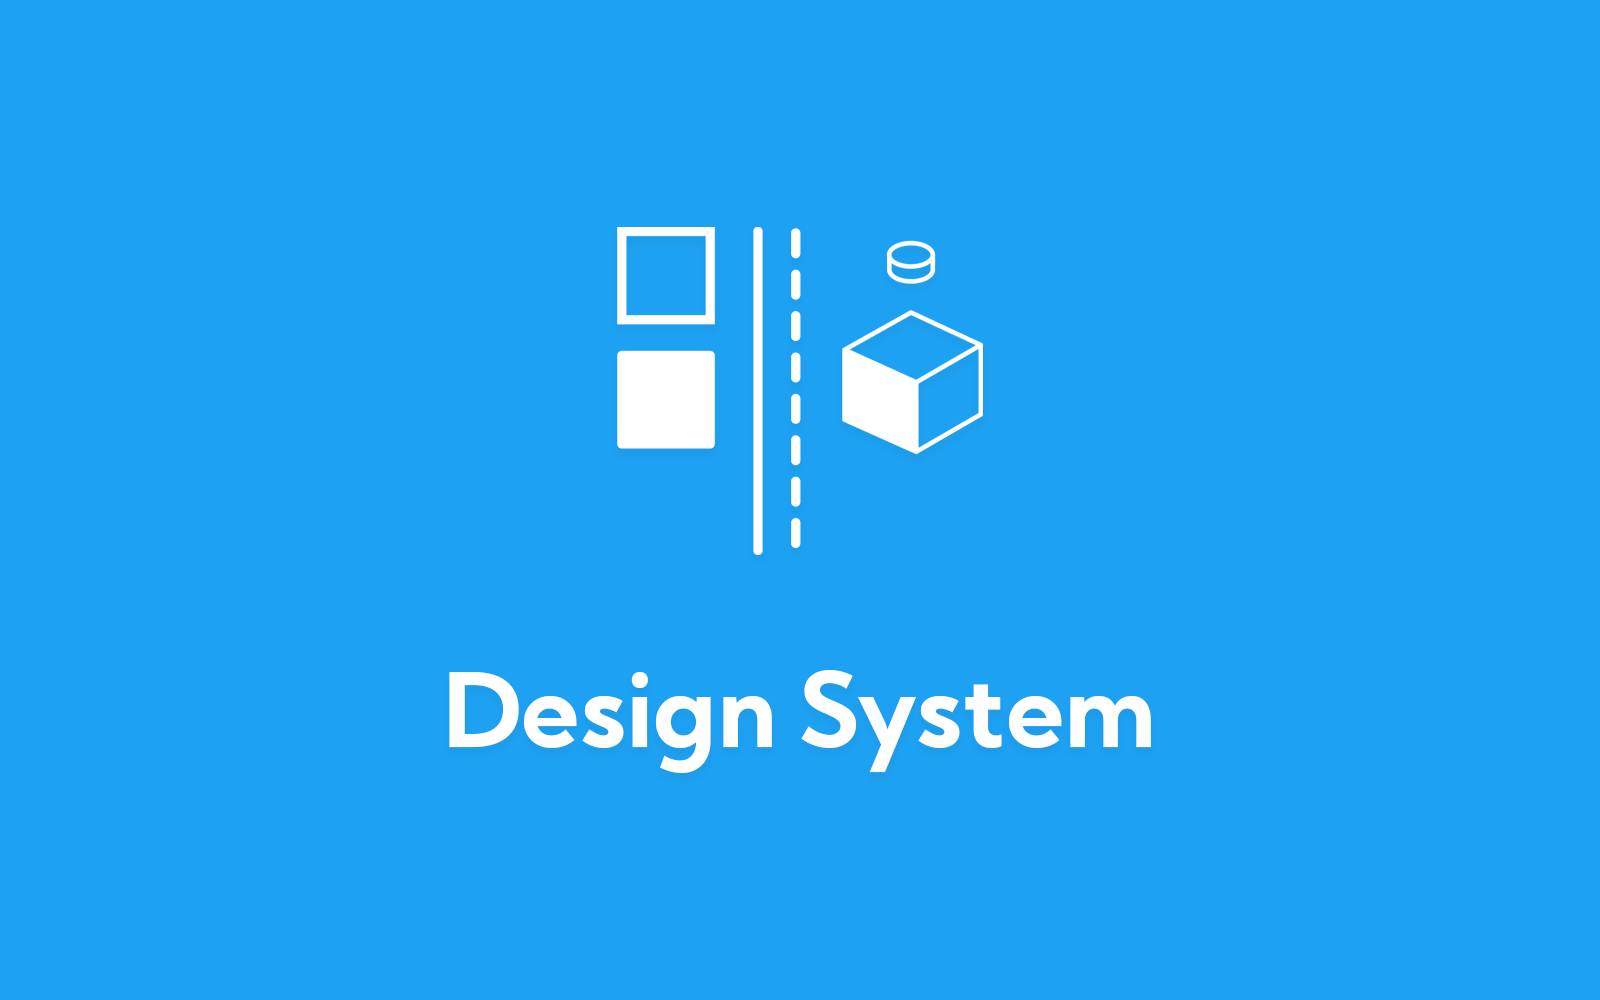 Design System icon on Twitter blue background